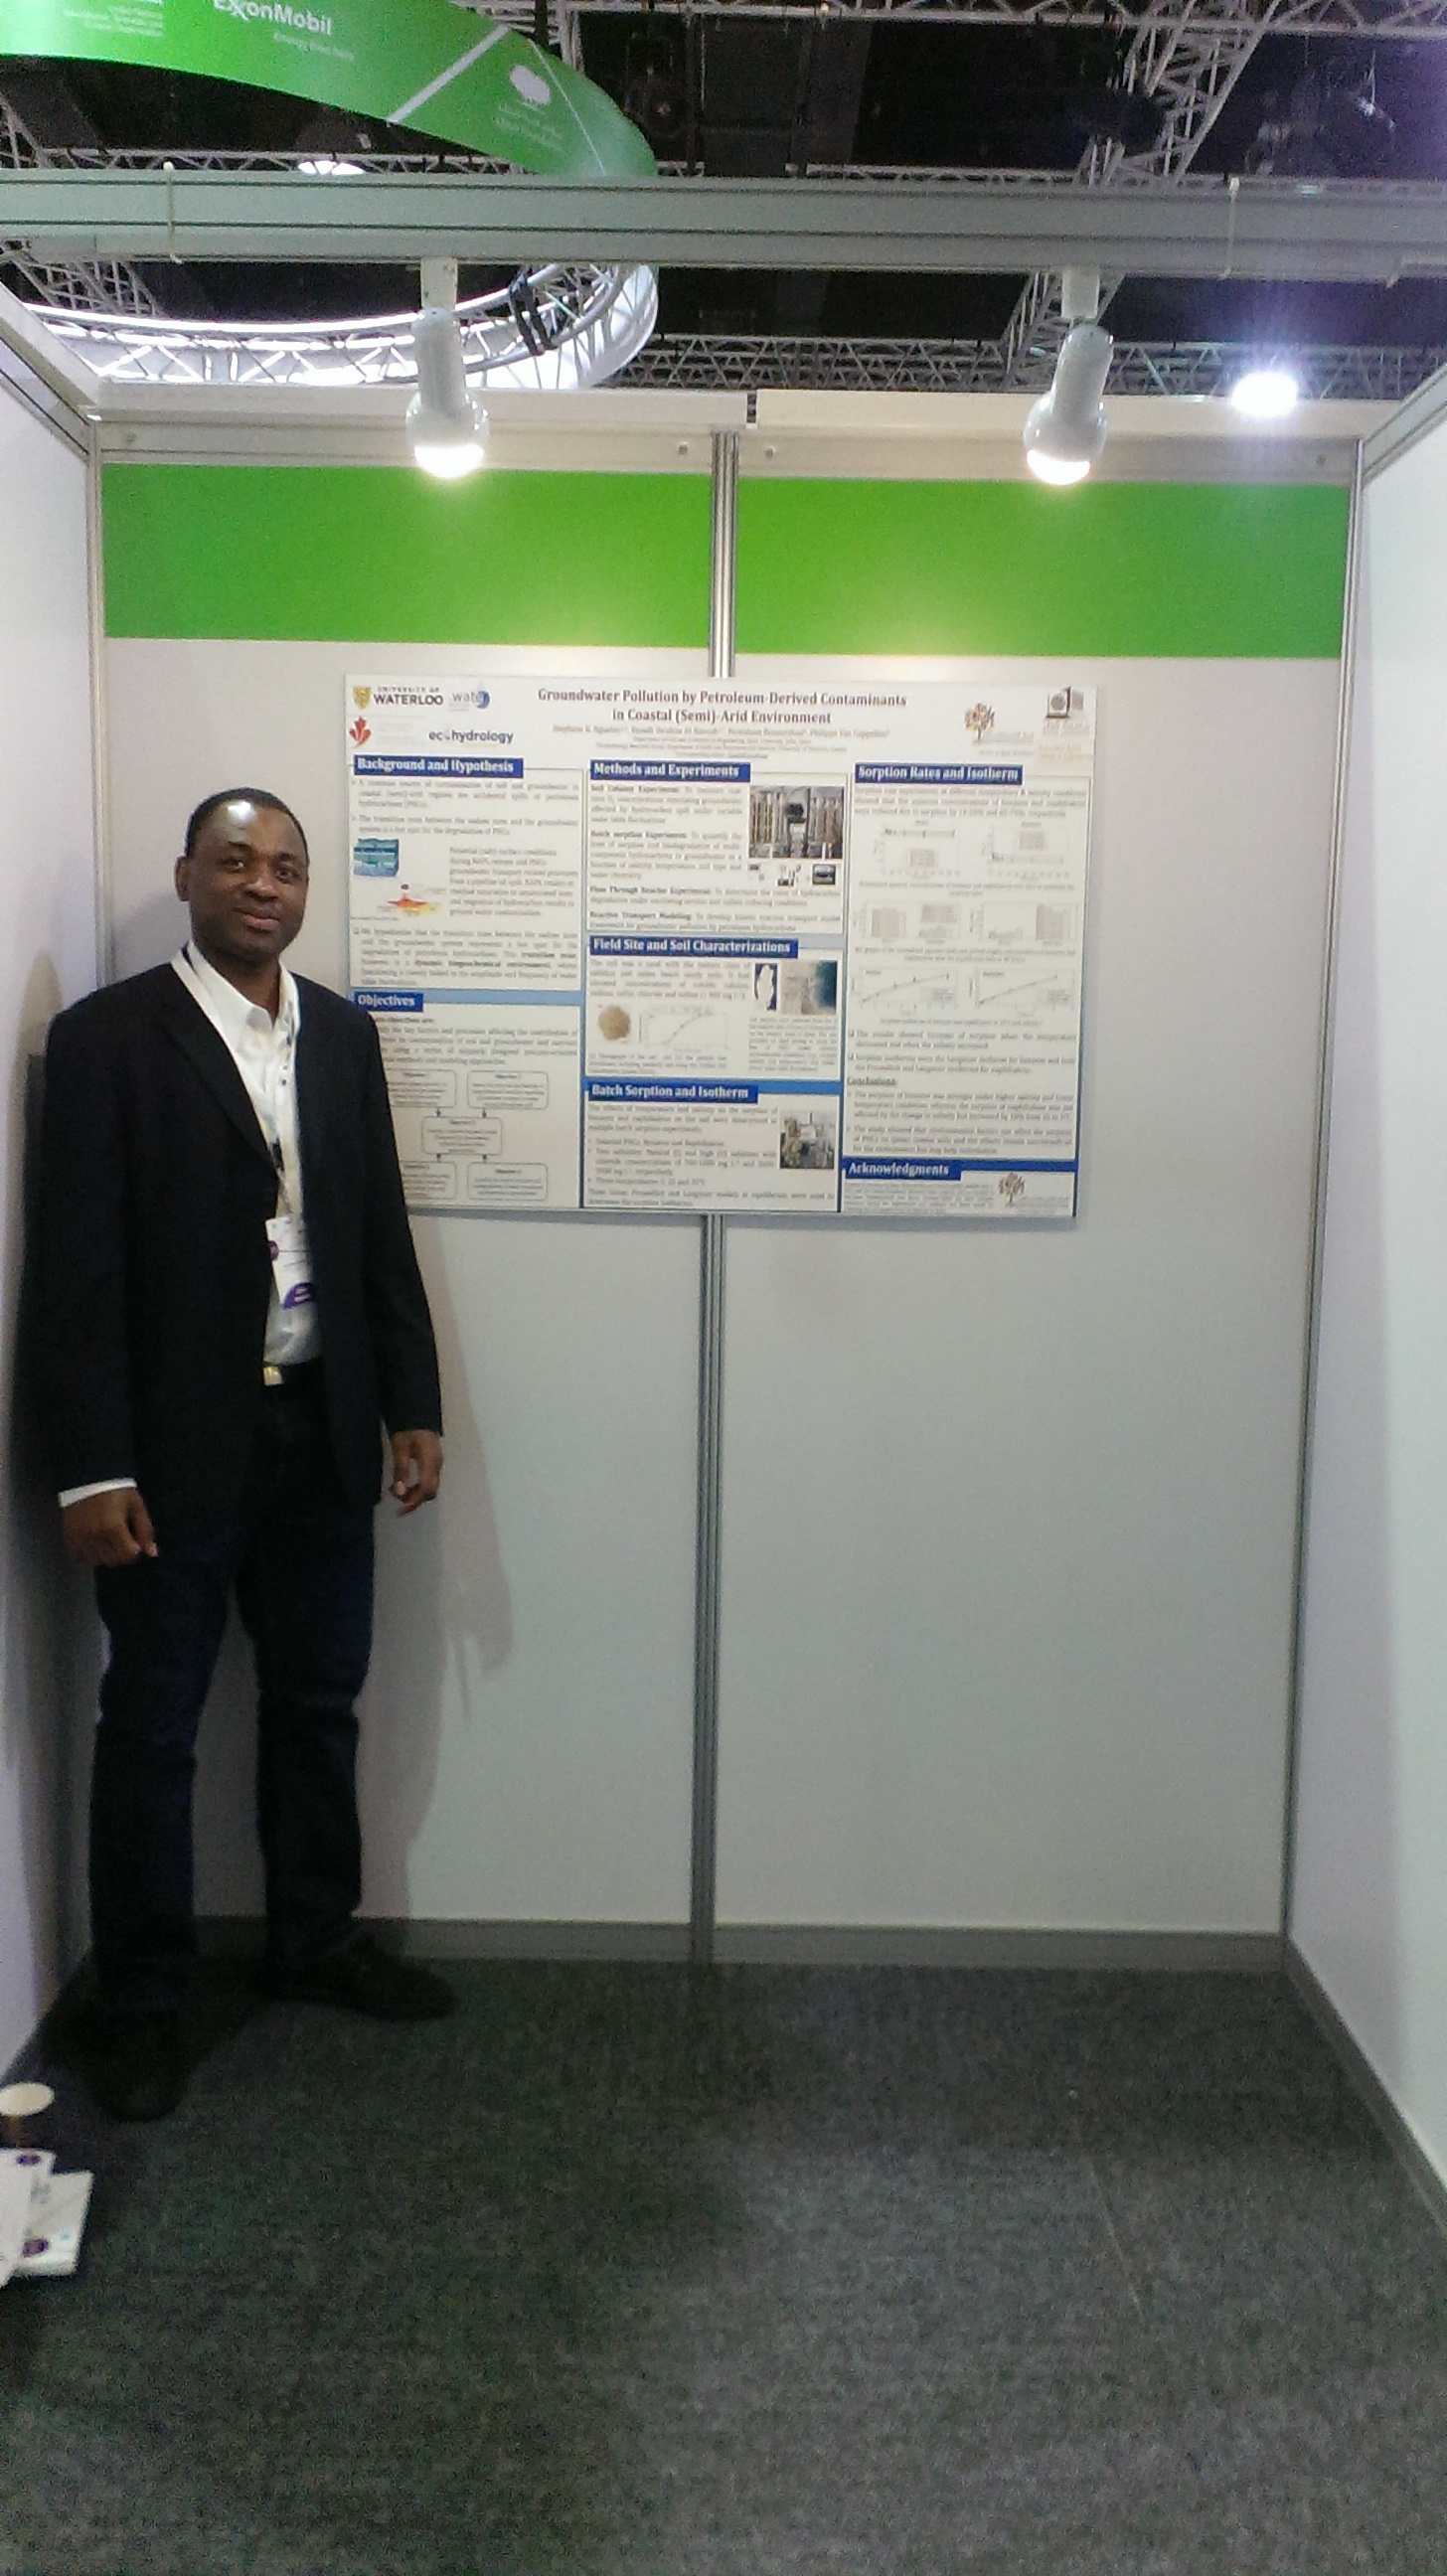 Stephane and his poster